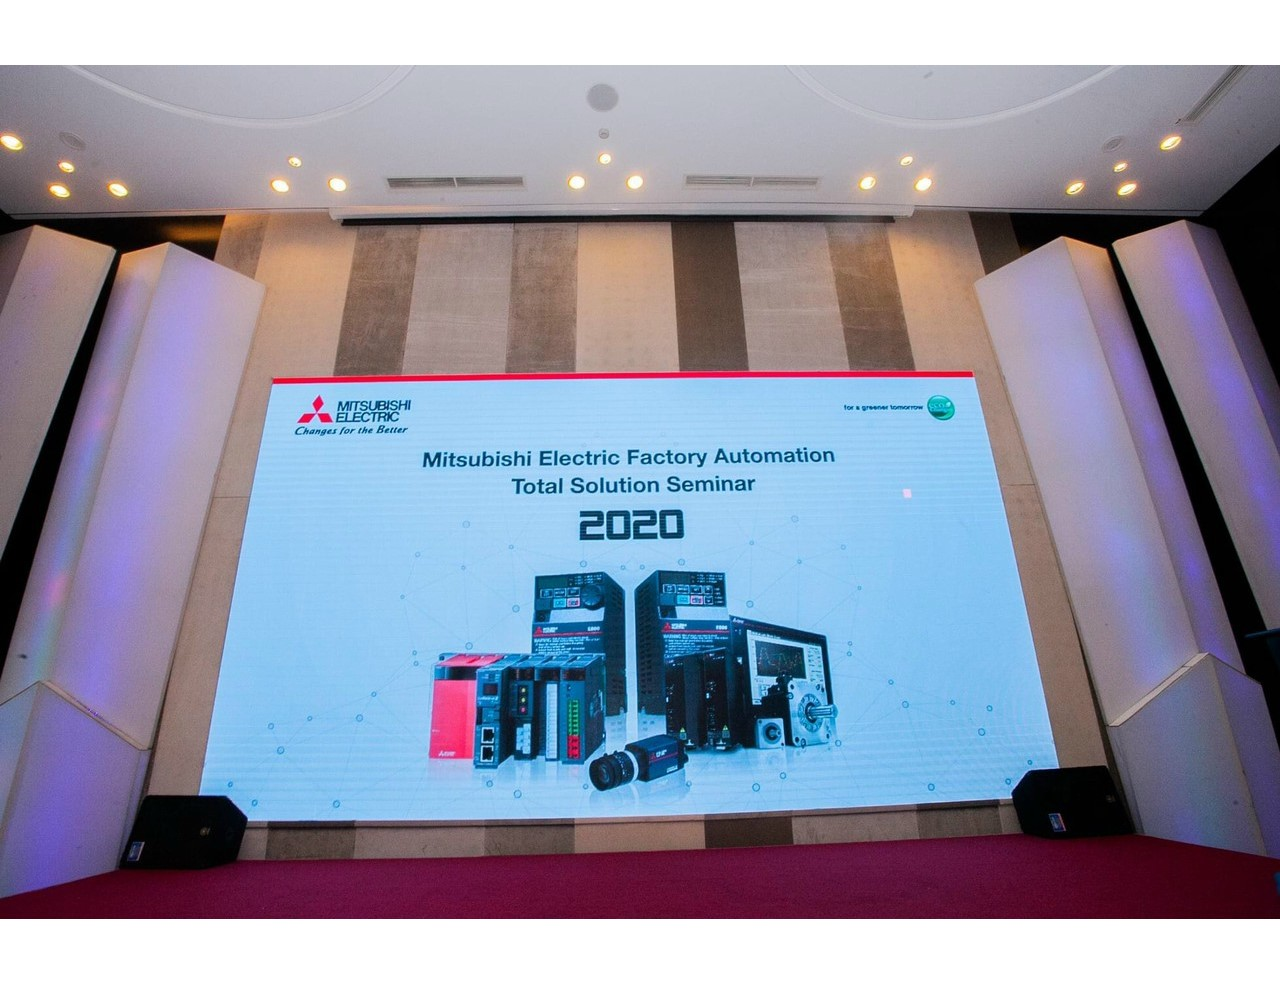 MITSUBISHI ELECTRIC FACTORY AUTOMATION - TOTAL SOLUTION SEMINAR - DA NANG 2020